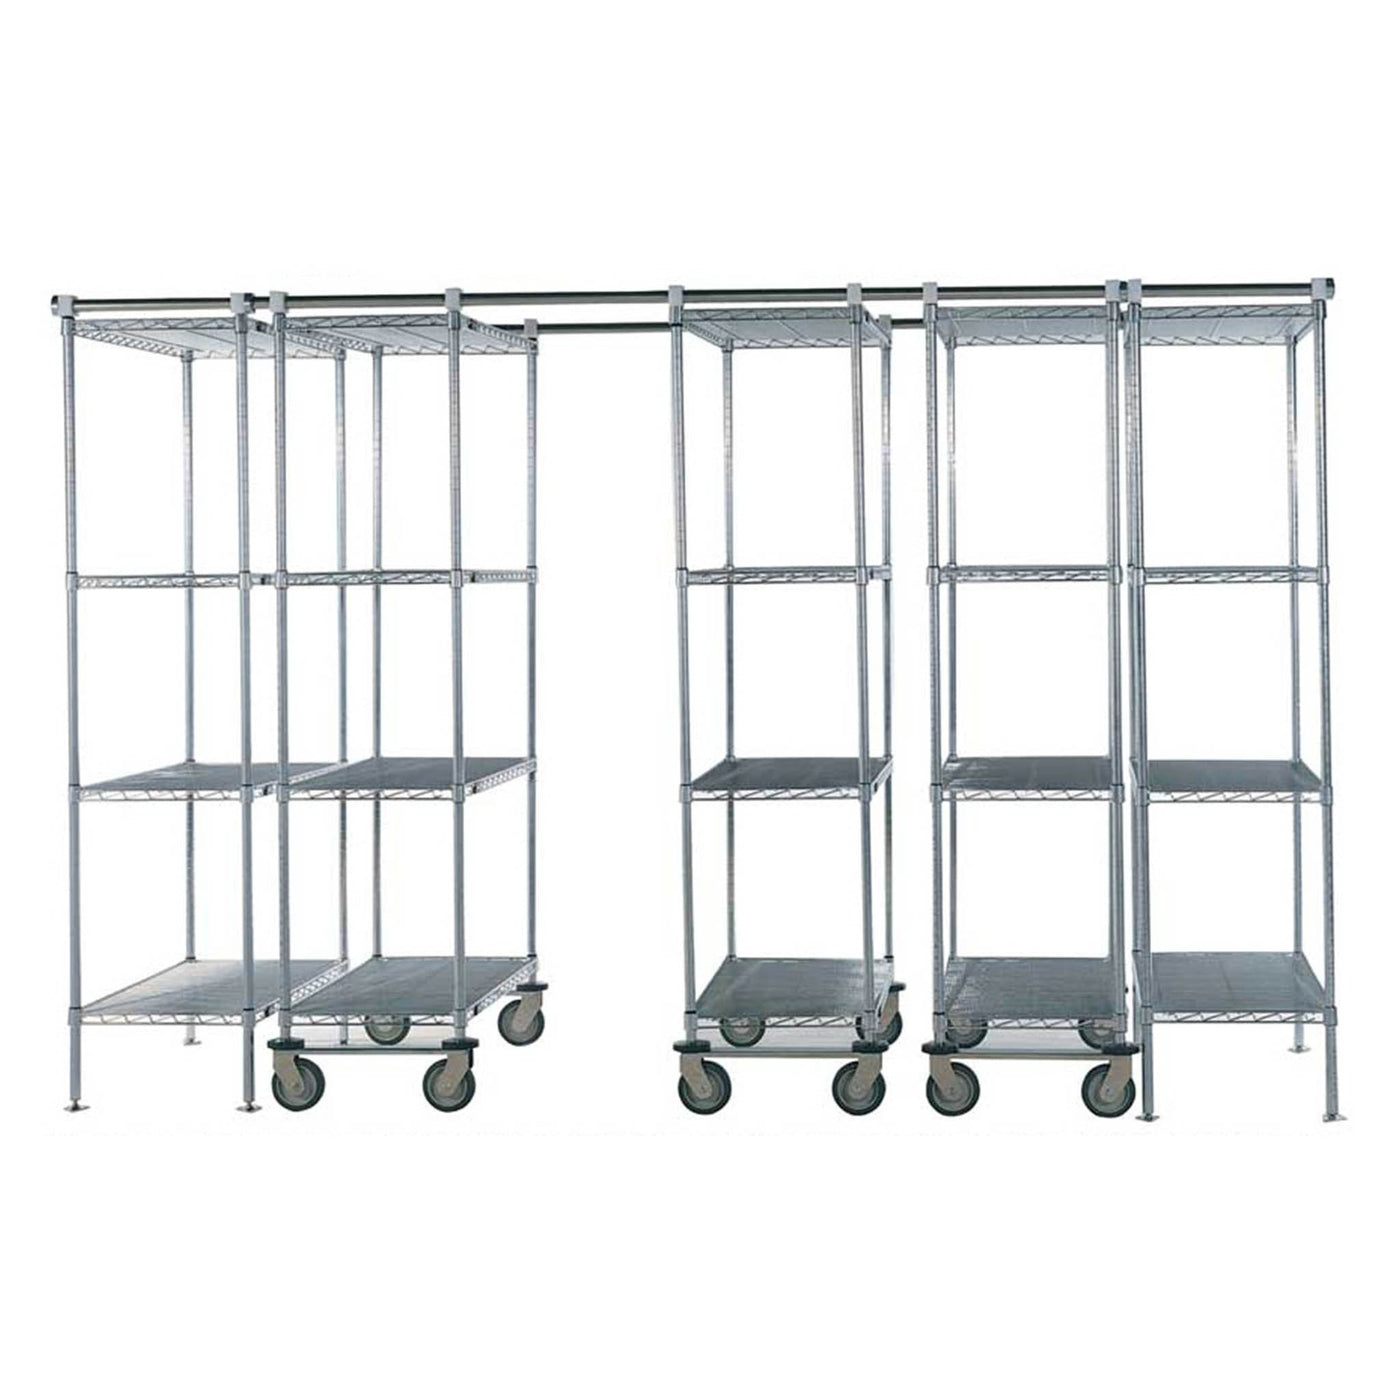 Laboratory Storage Shelves Ergonomie Am Arbeitsplatz